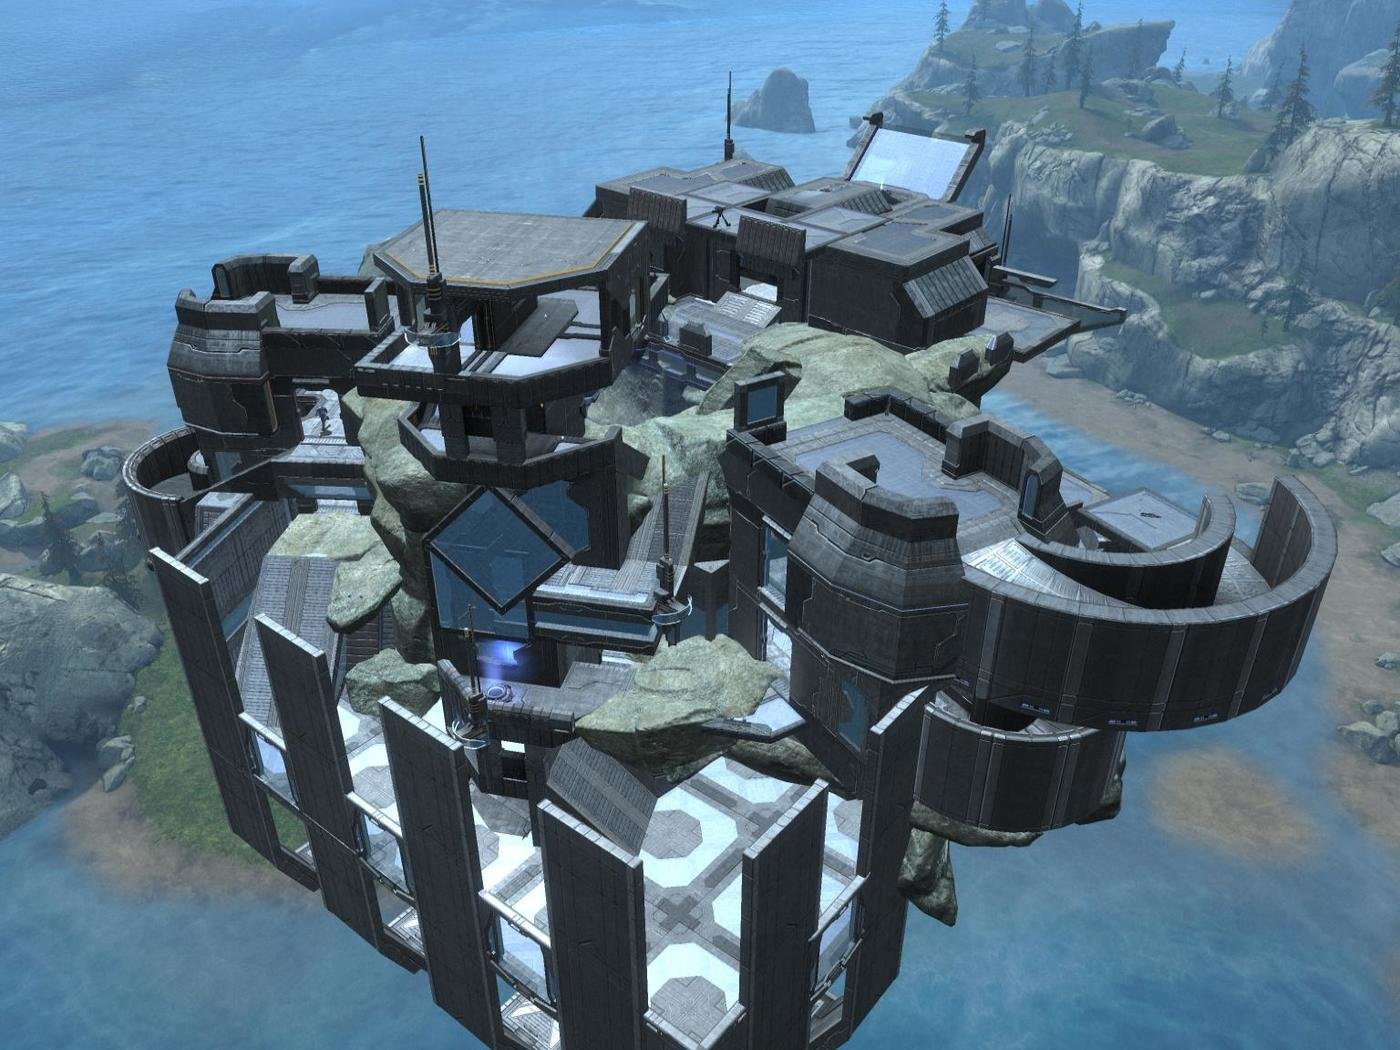 Halo: Reach Forge Map by Dylan Mayerchak at Coroflot com